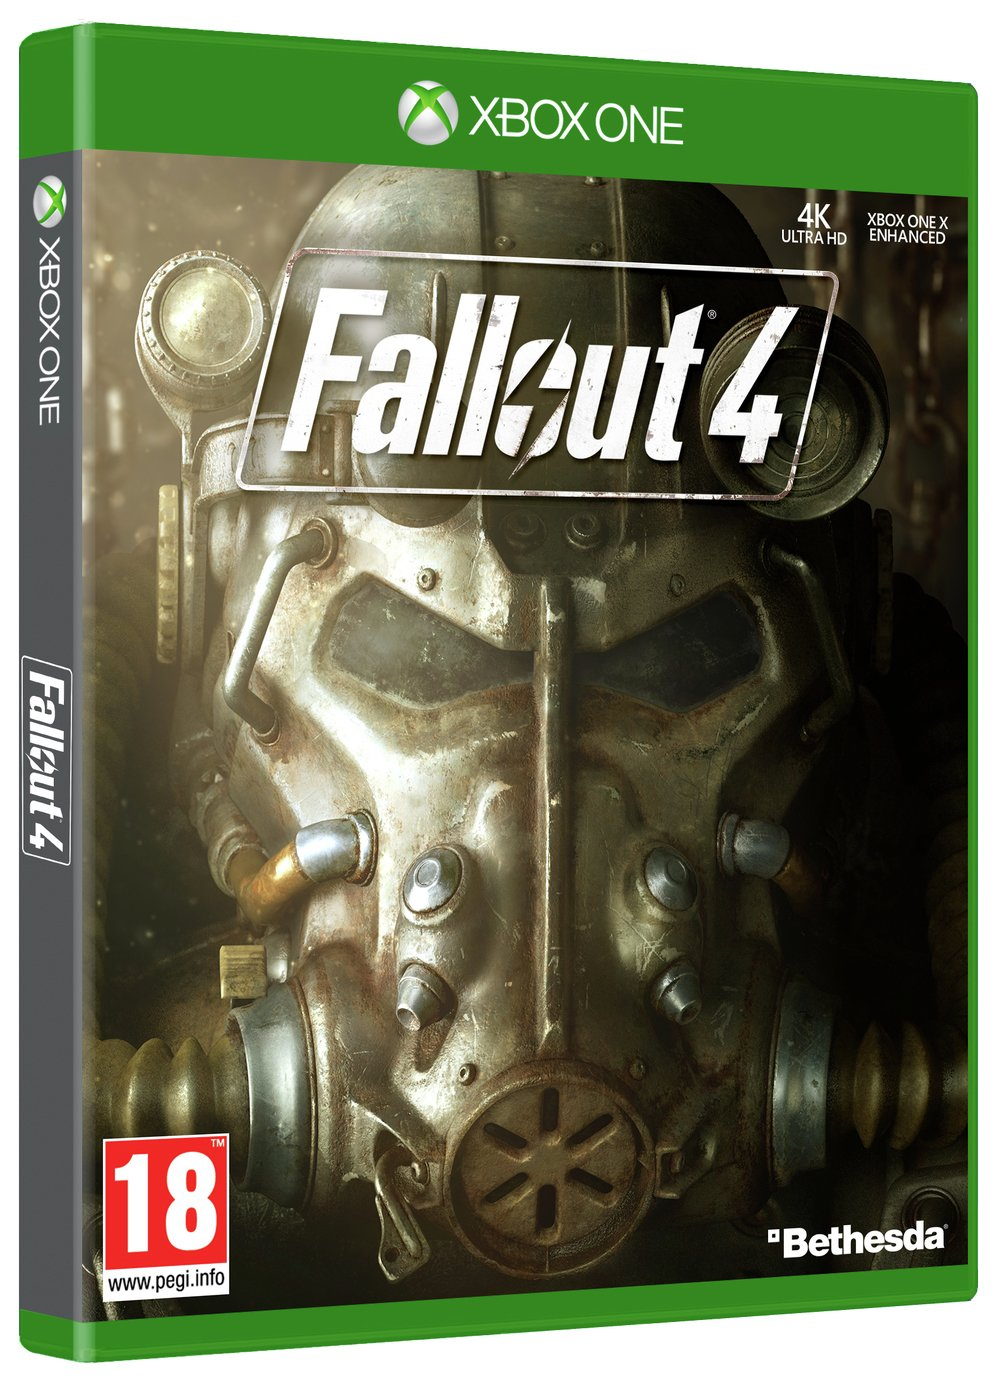 Fallout 4 - Xbox - One Game.